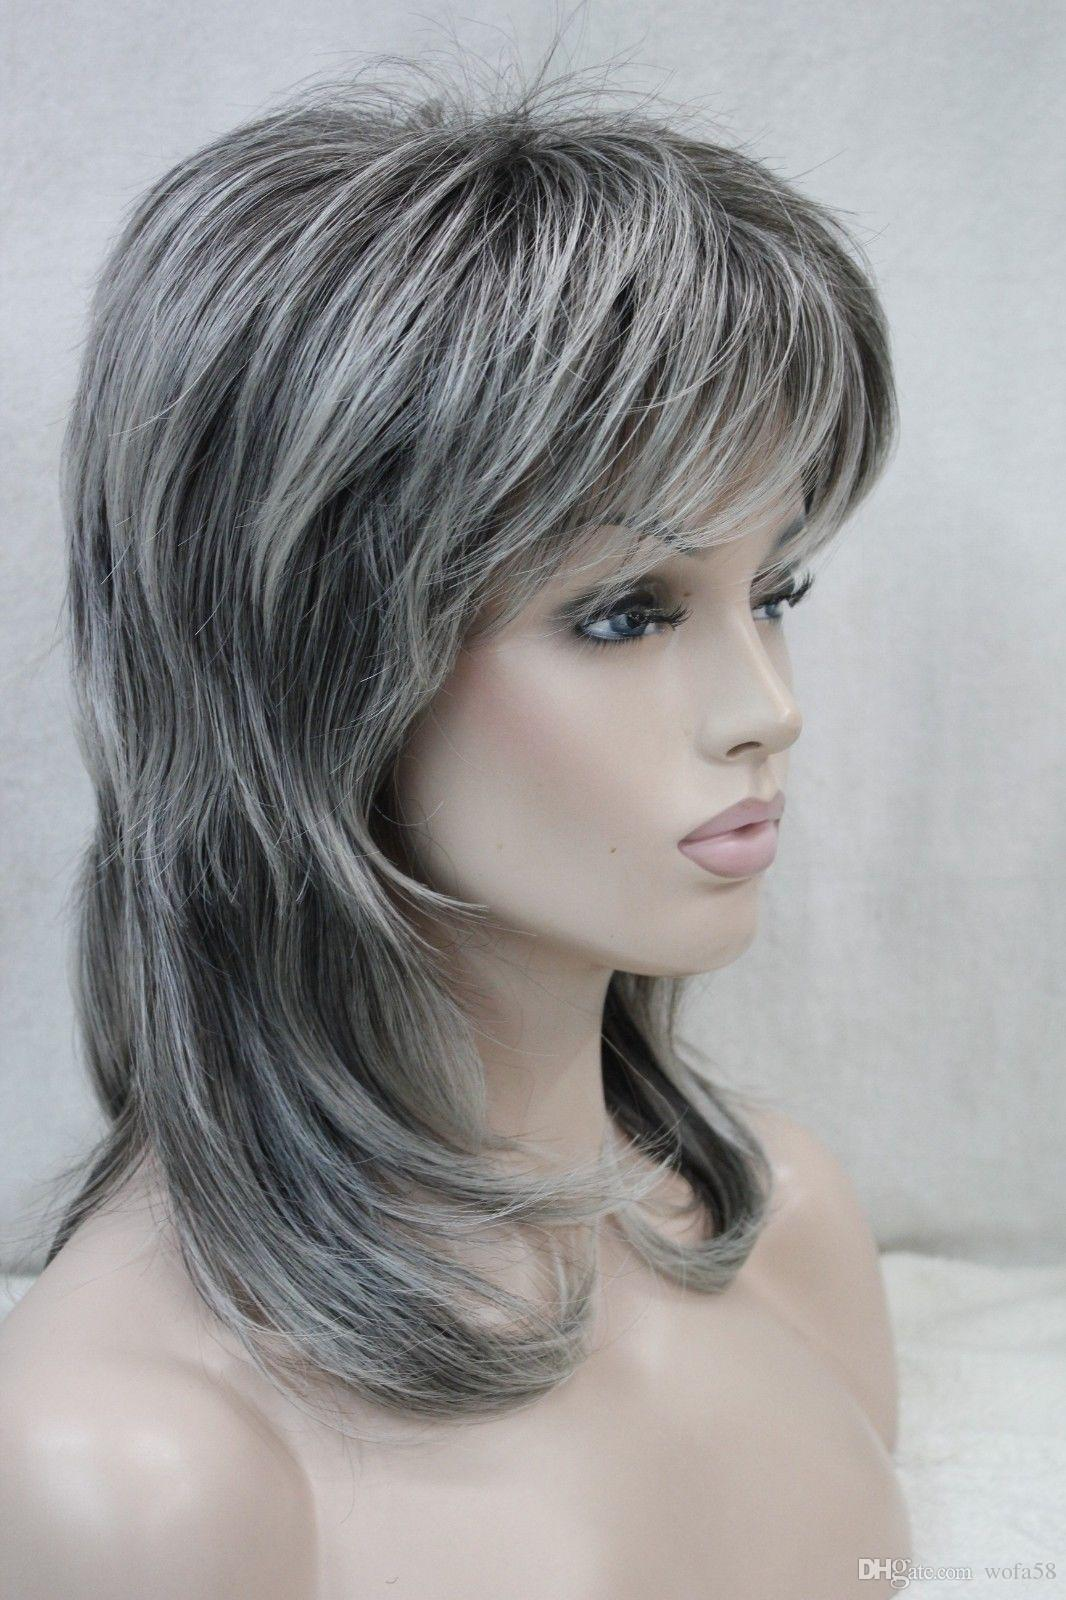 New Women'S Wig Medium Length Grey Layered Shoulder Long Synthetic Hair Full Wig Upart Wig Cap ...